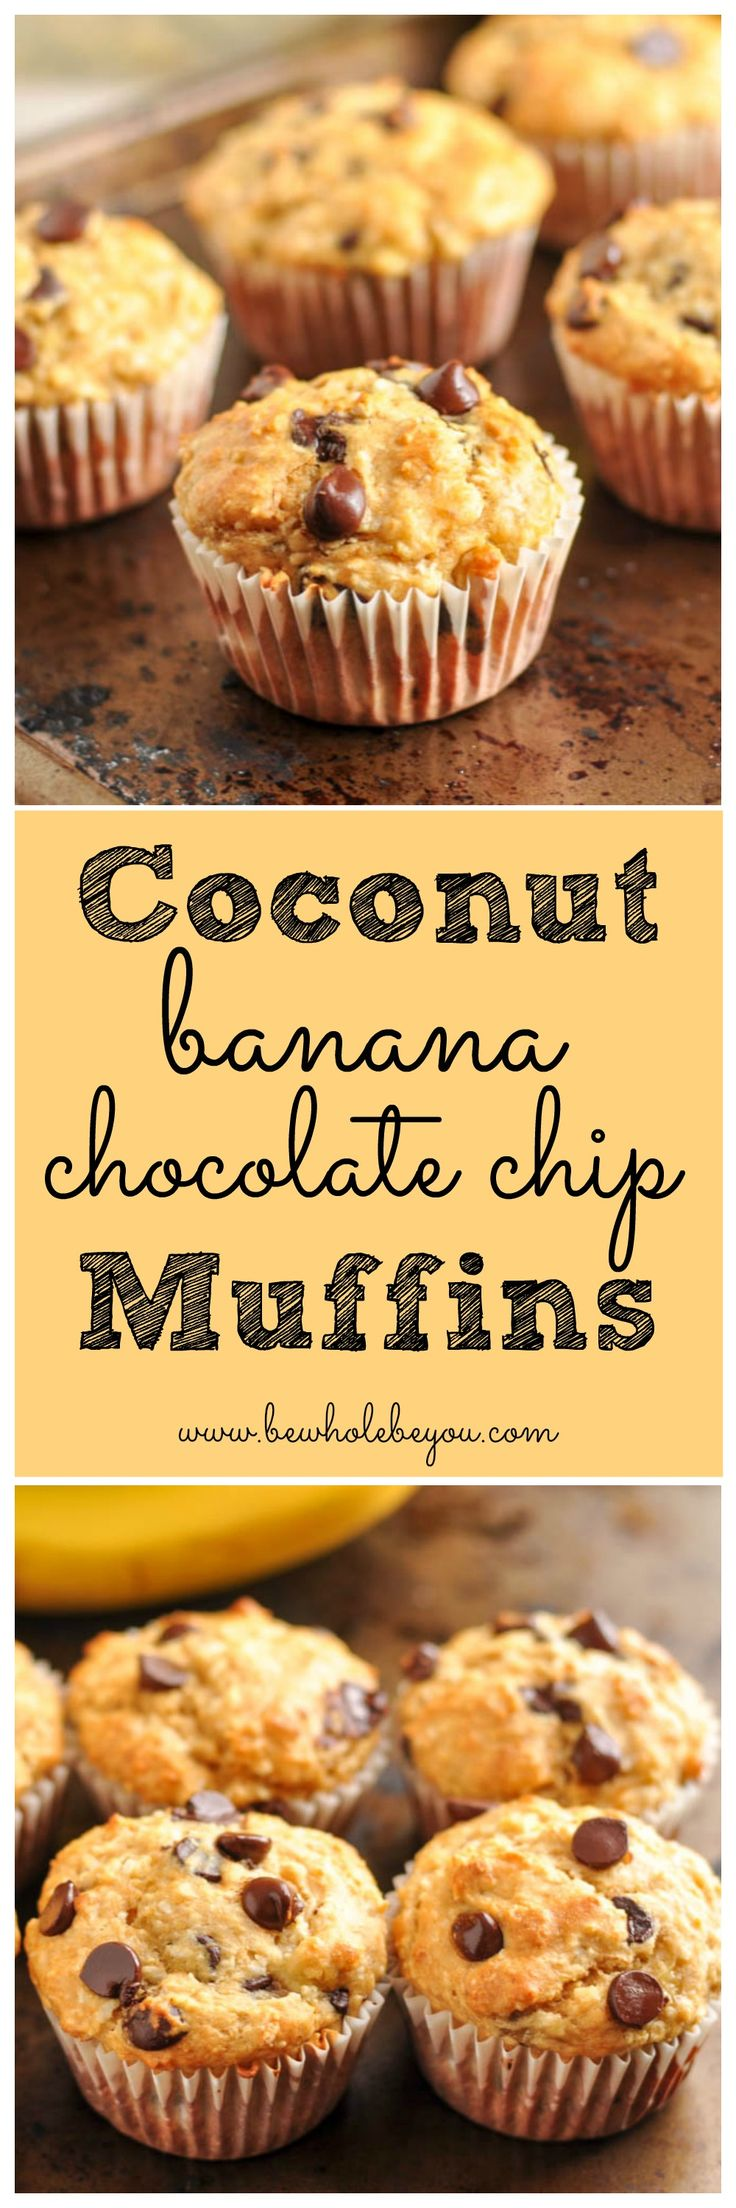 Coconut Banana Chocolate Chip Muffins. Be Whole. Be You.